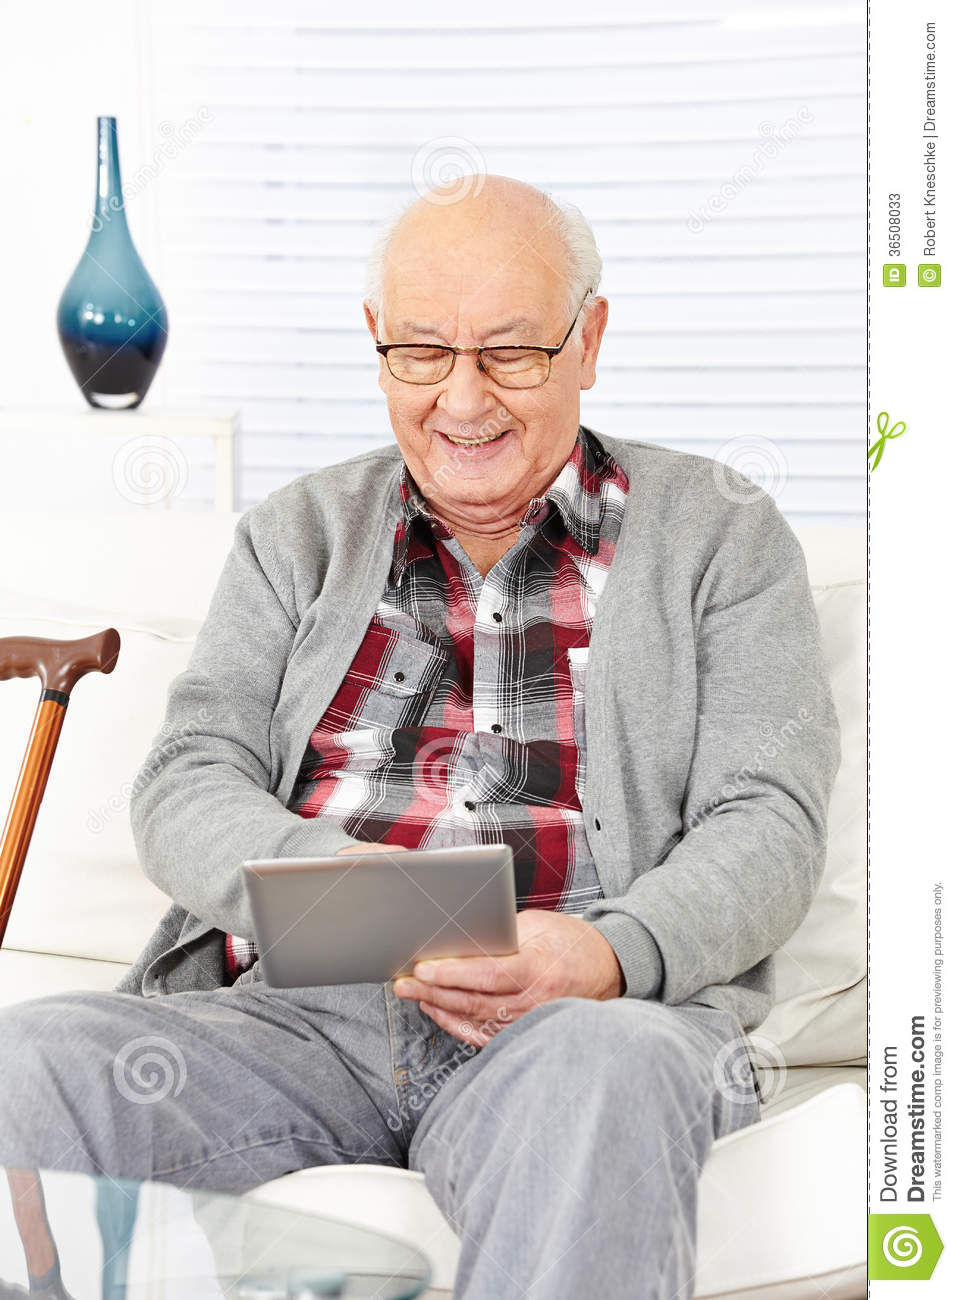 Old man internet